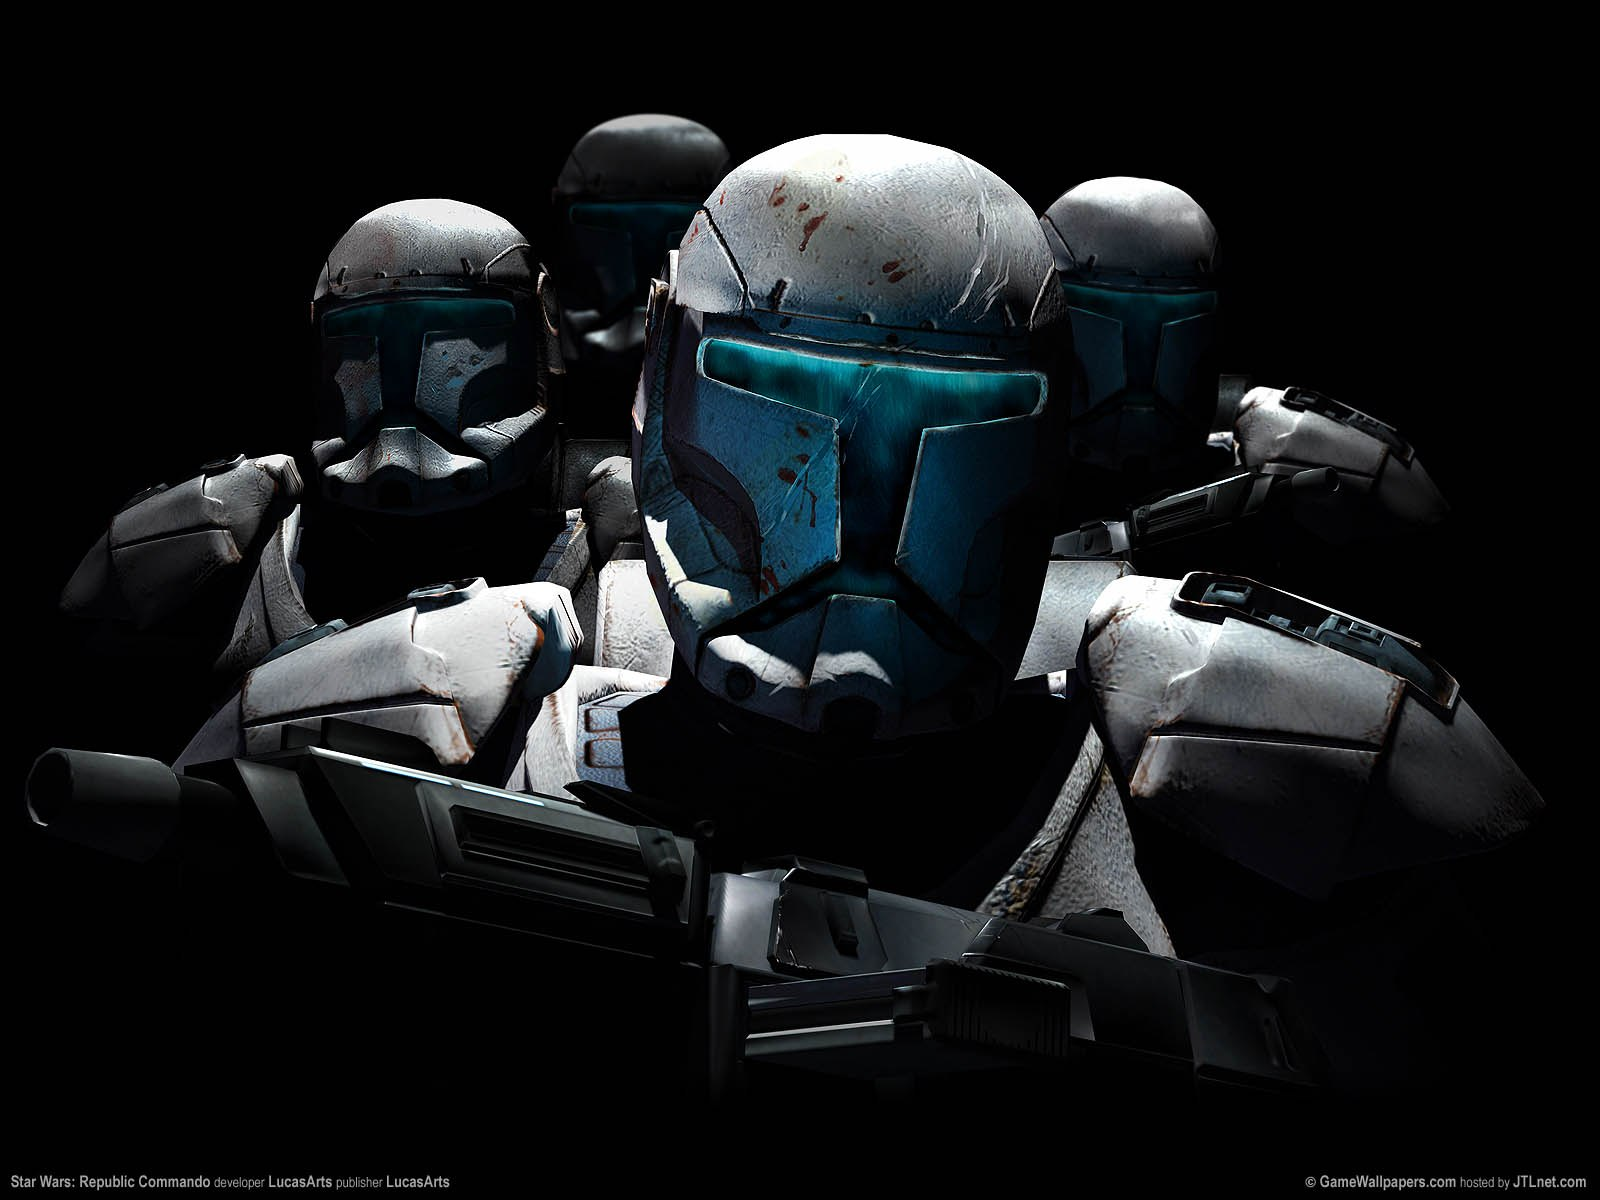 star wars boba fet android wallpaper star wars boba fet android wallpaper